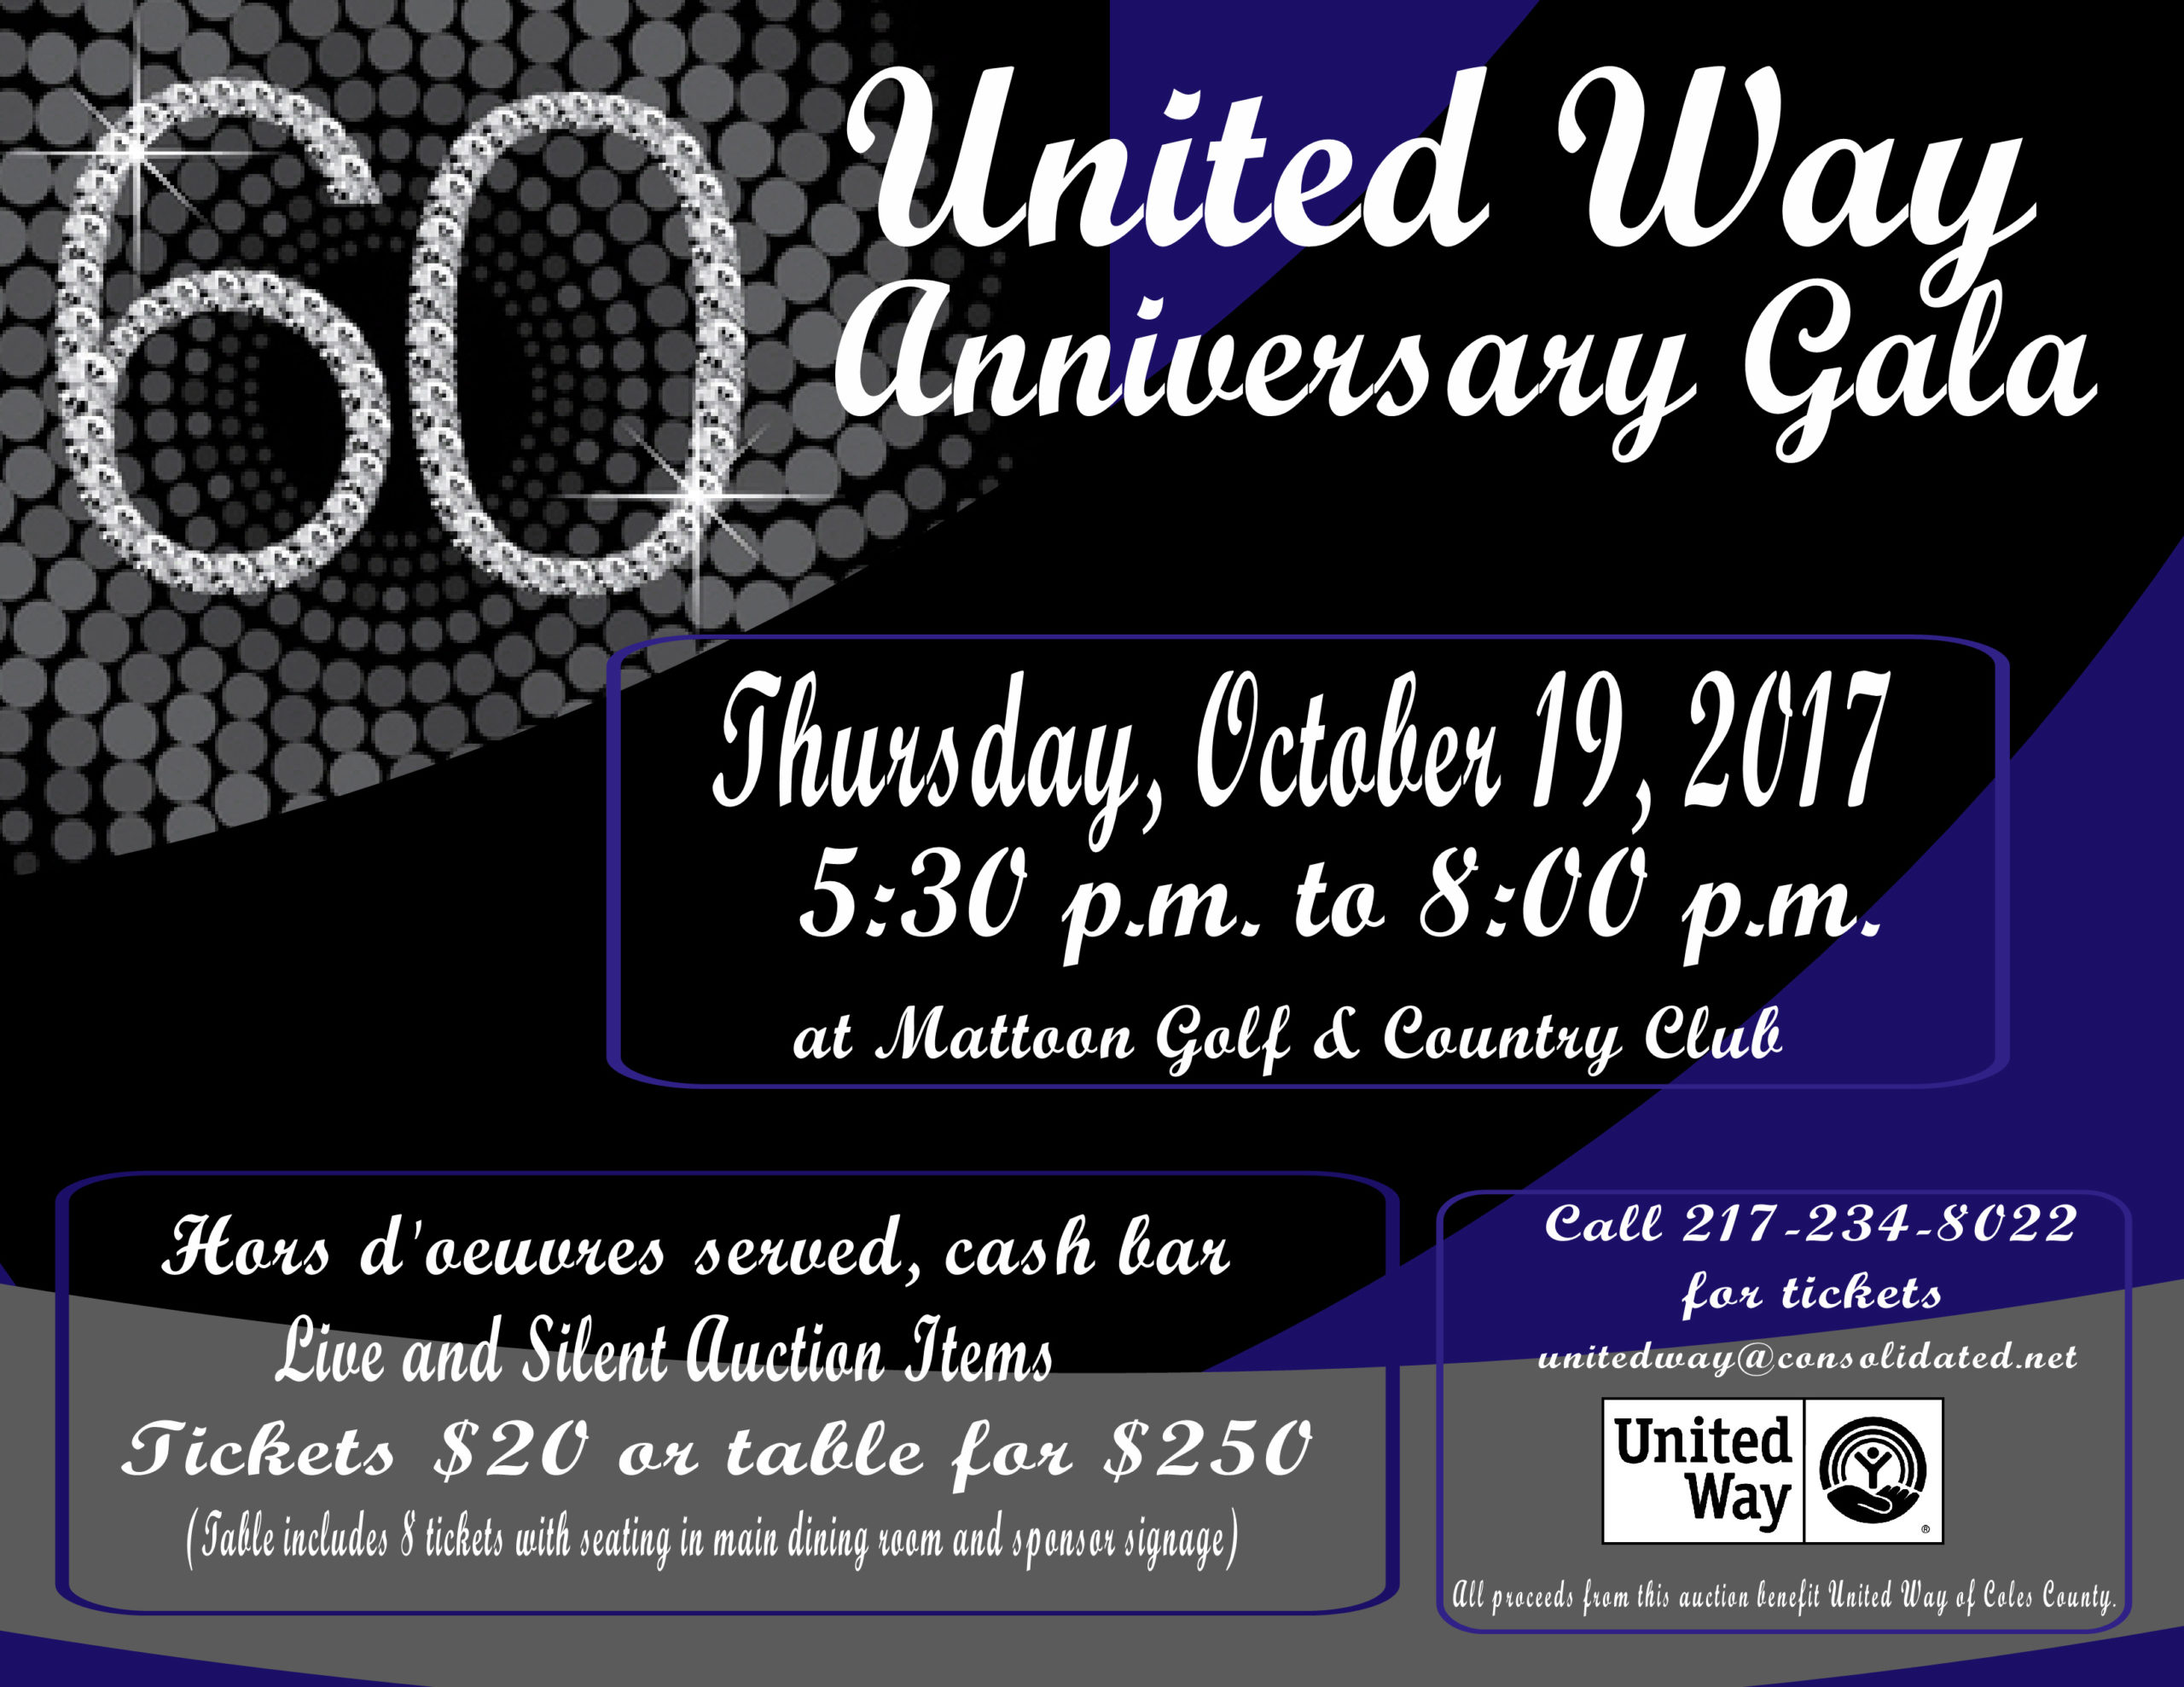 United Way of Coles County 60th Anniversary Gala